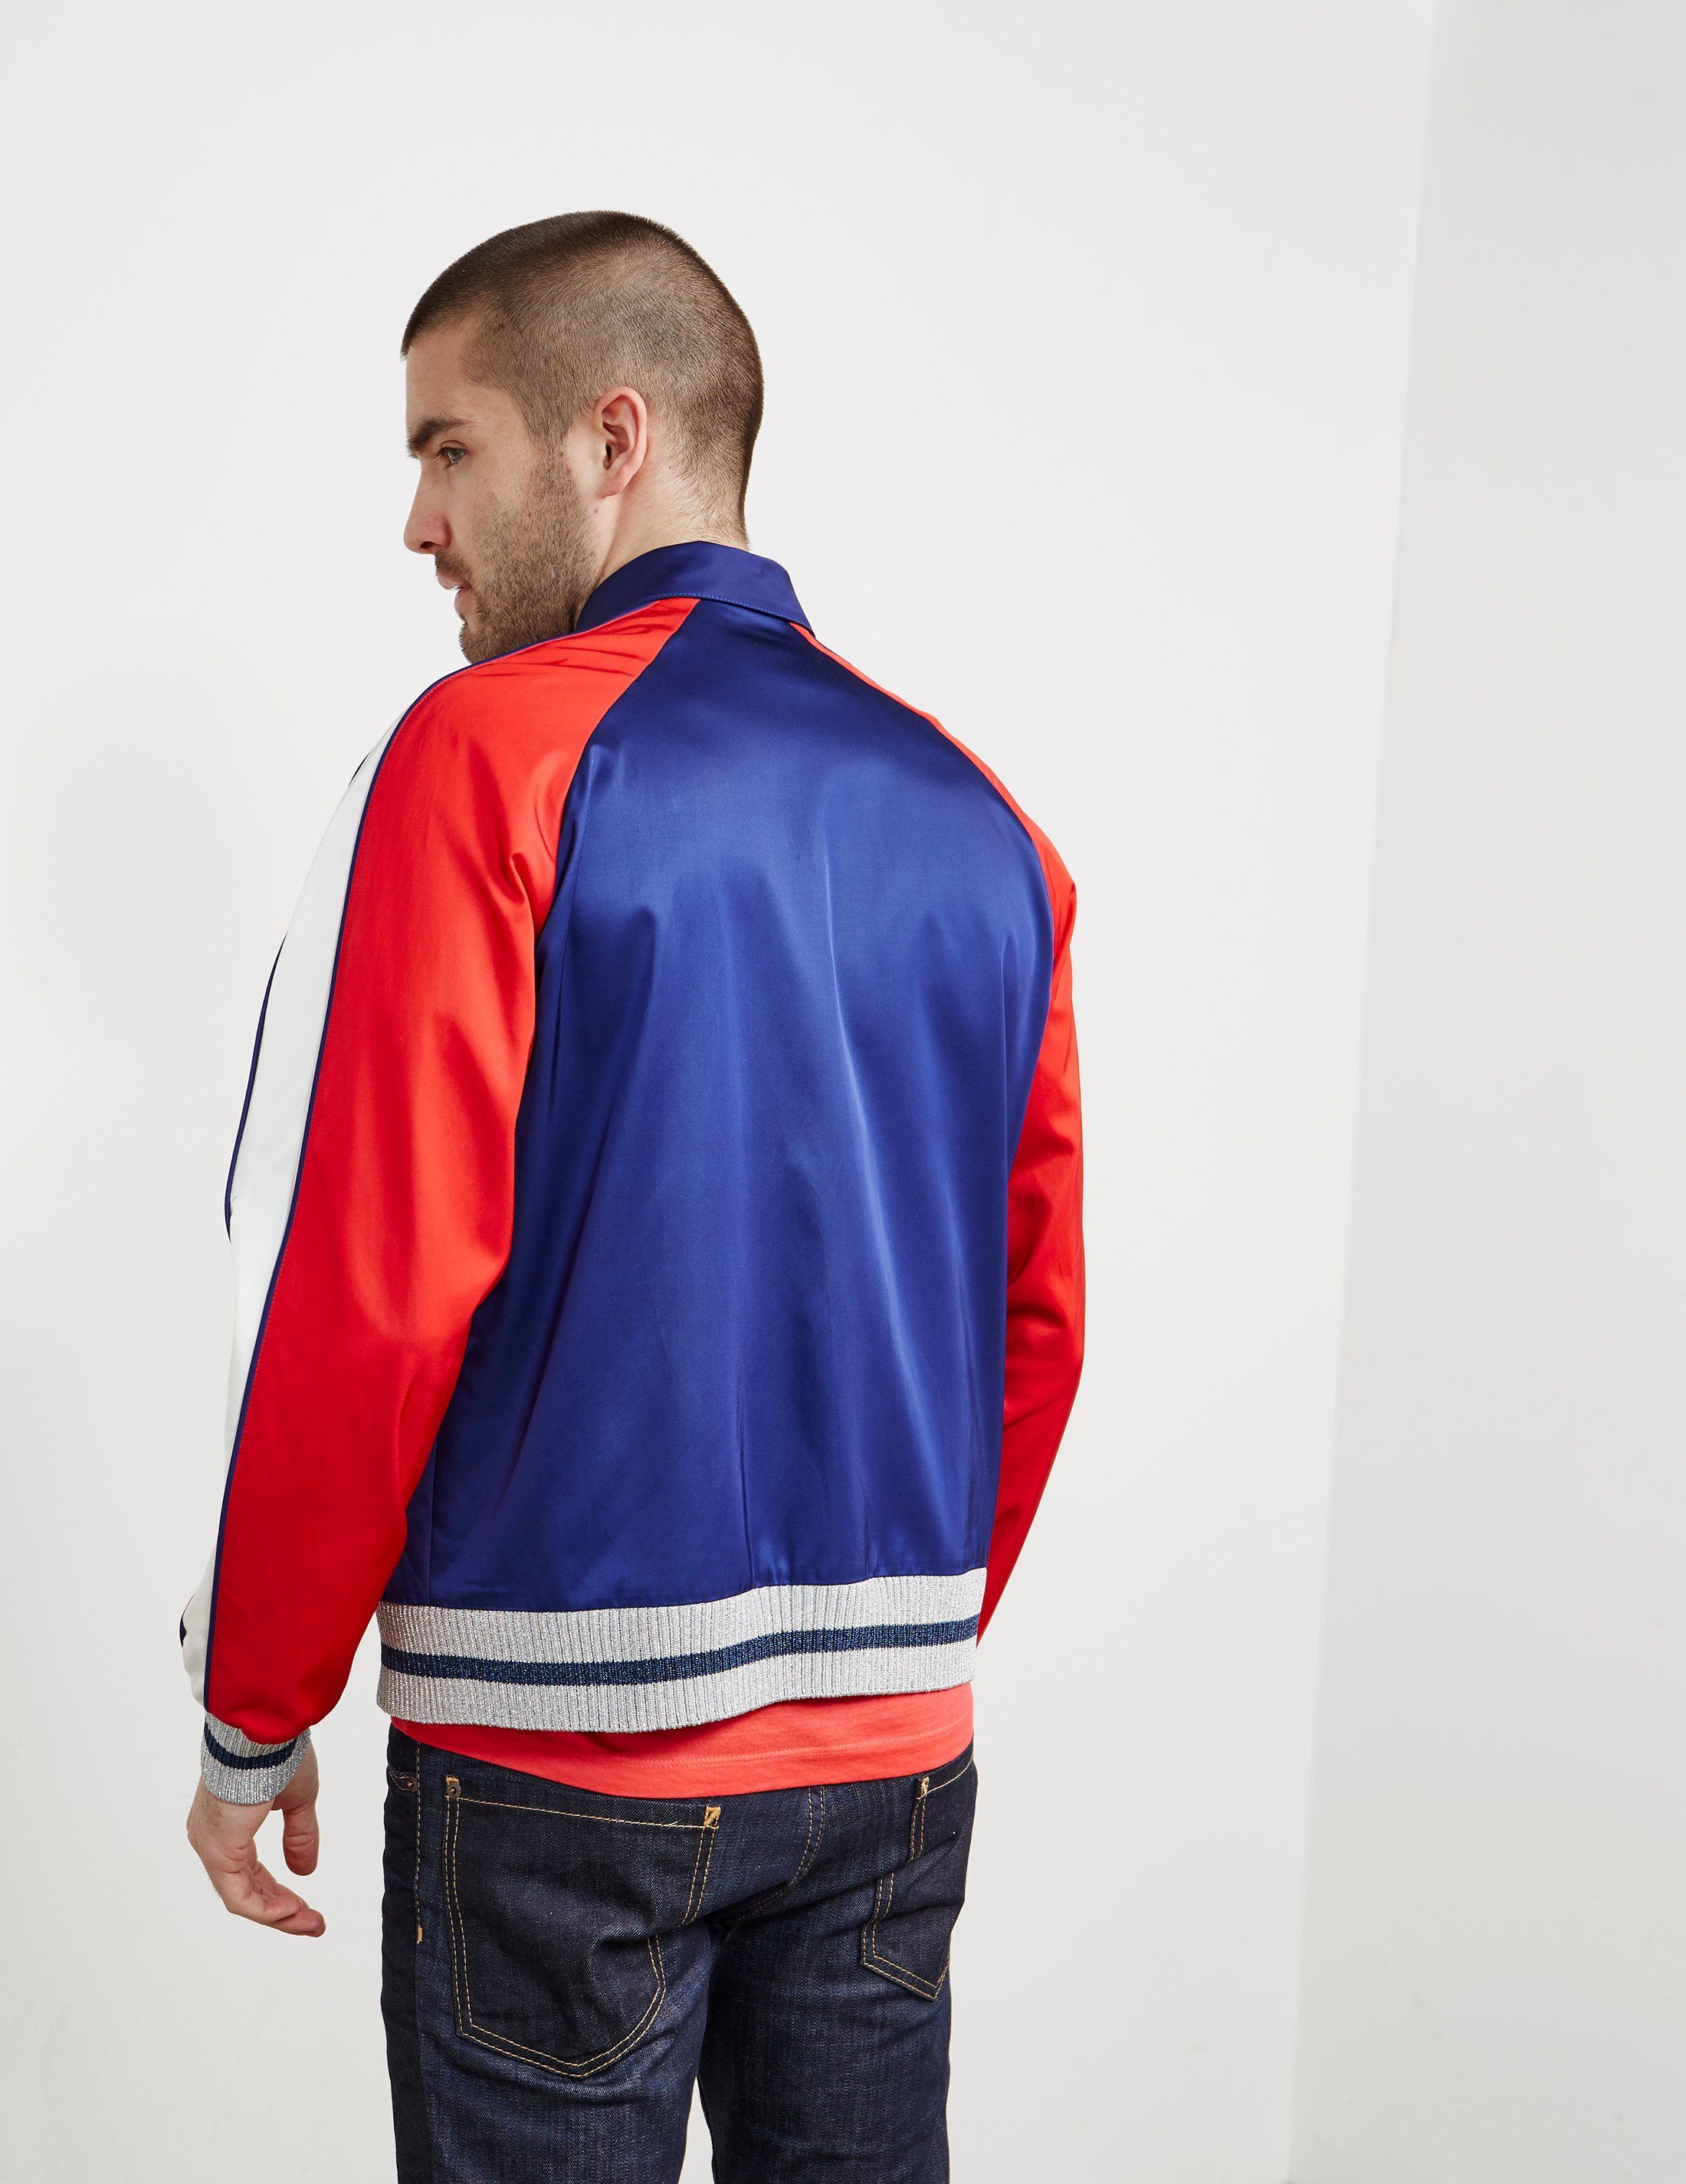 Dsquared2 Hawaii Bomber Jacket - Online Exclusive